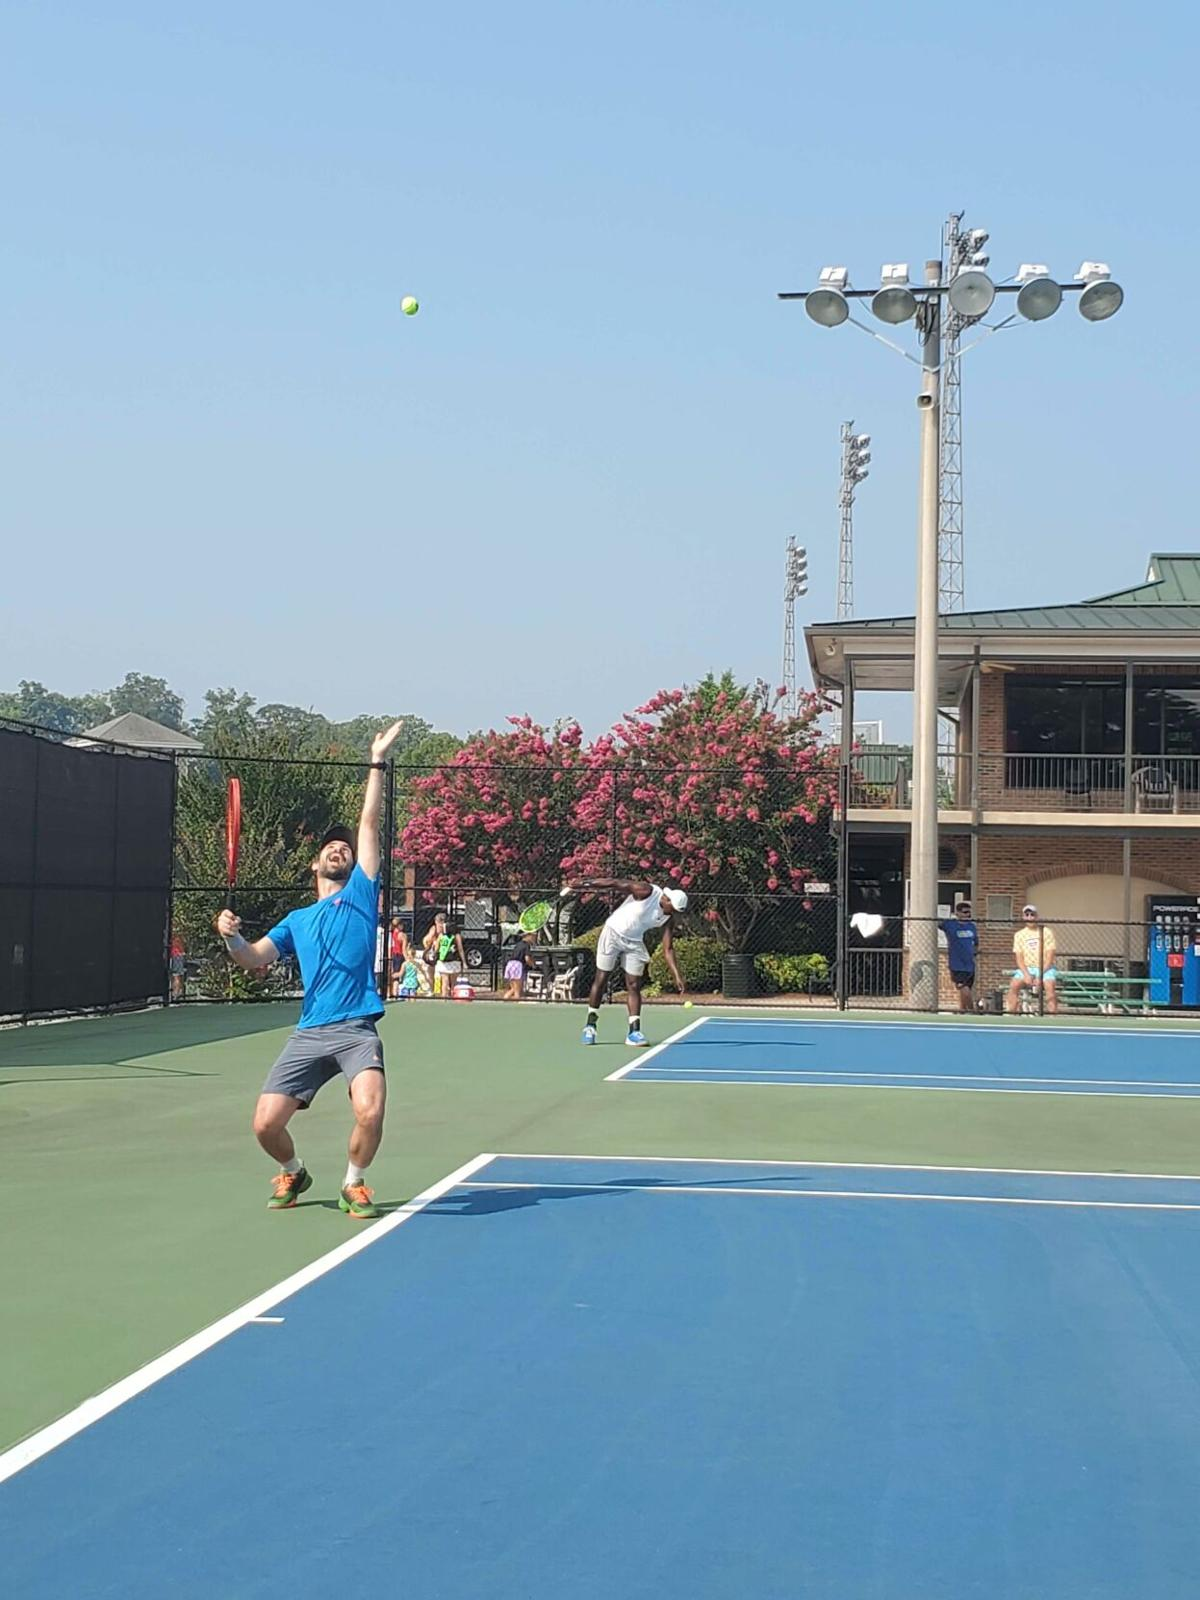 Tennis under the Georgia Sun: 2021 USTA Southern Sectional Championships